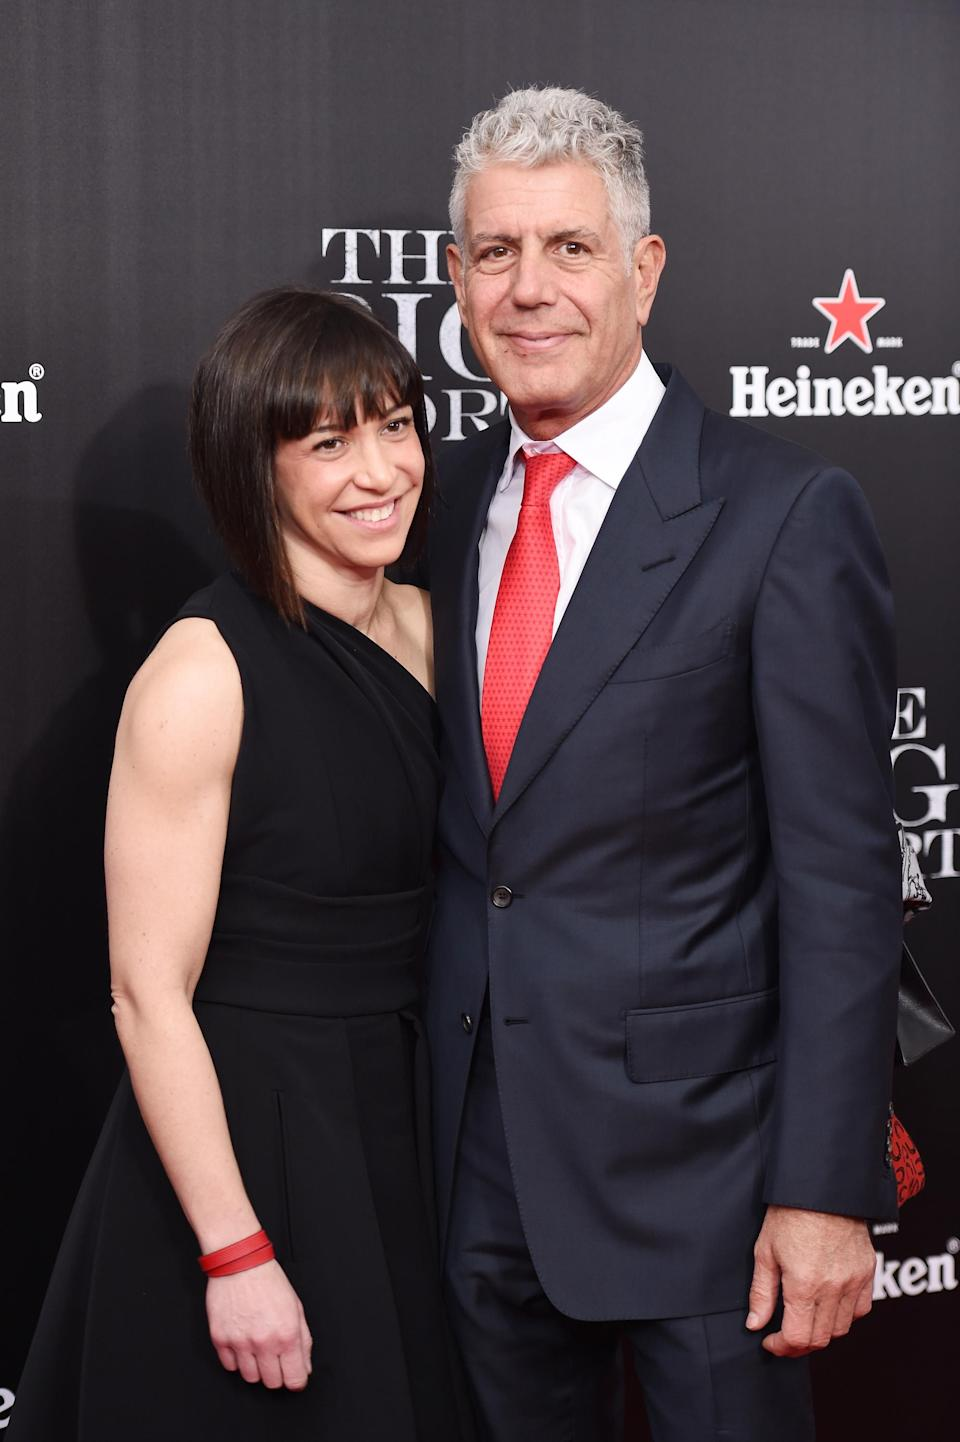 Anthony Bourdain with his second wife, Ottavia Busia, at the premiere of <em>The Big Short</em>, Nov. 23, 2015, in New York. (Photo: Dimitrios Kambouris/Getty Images)